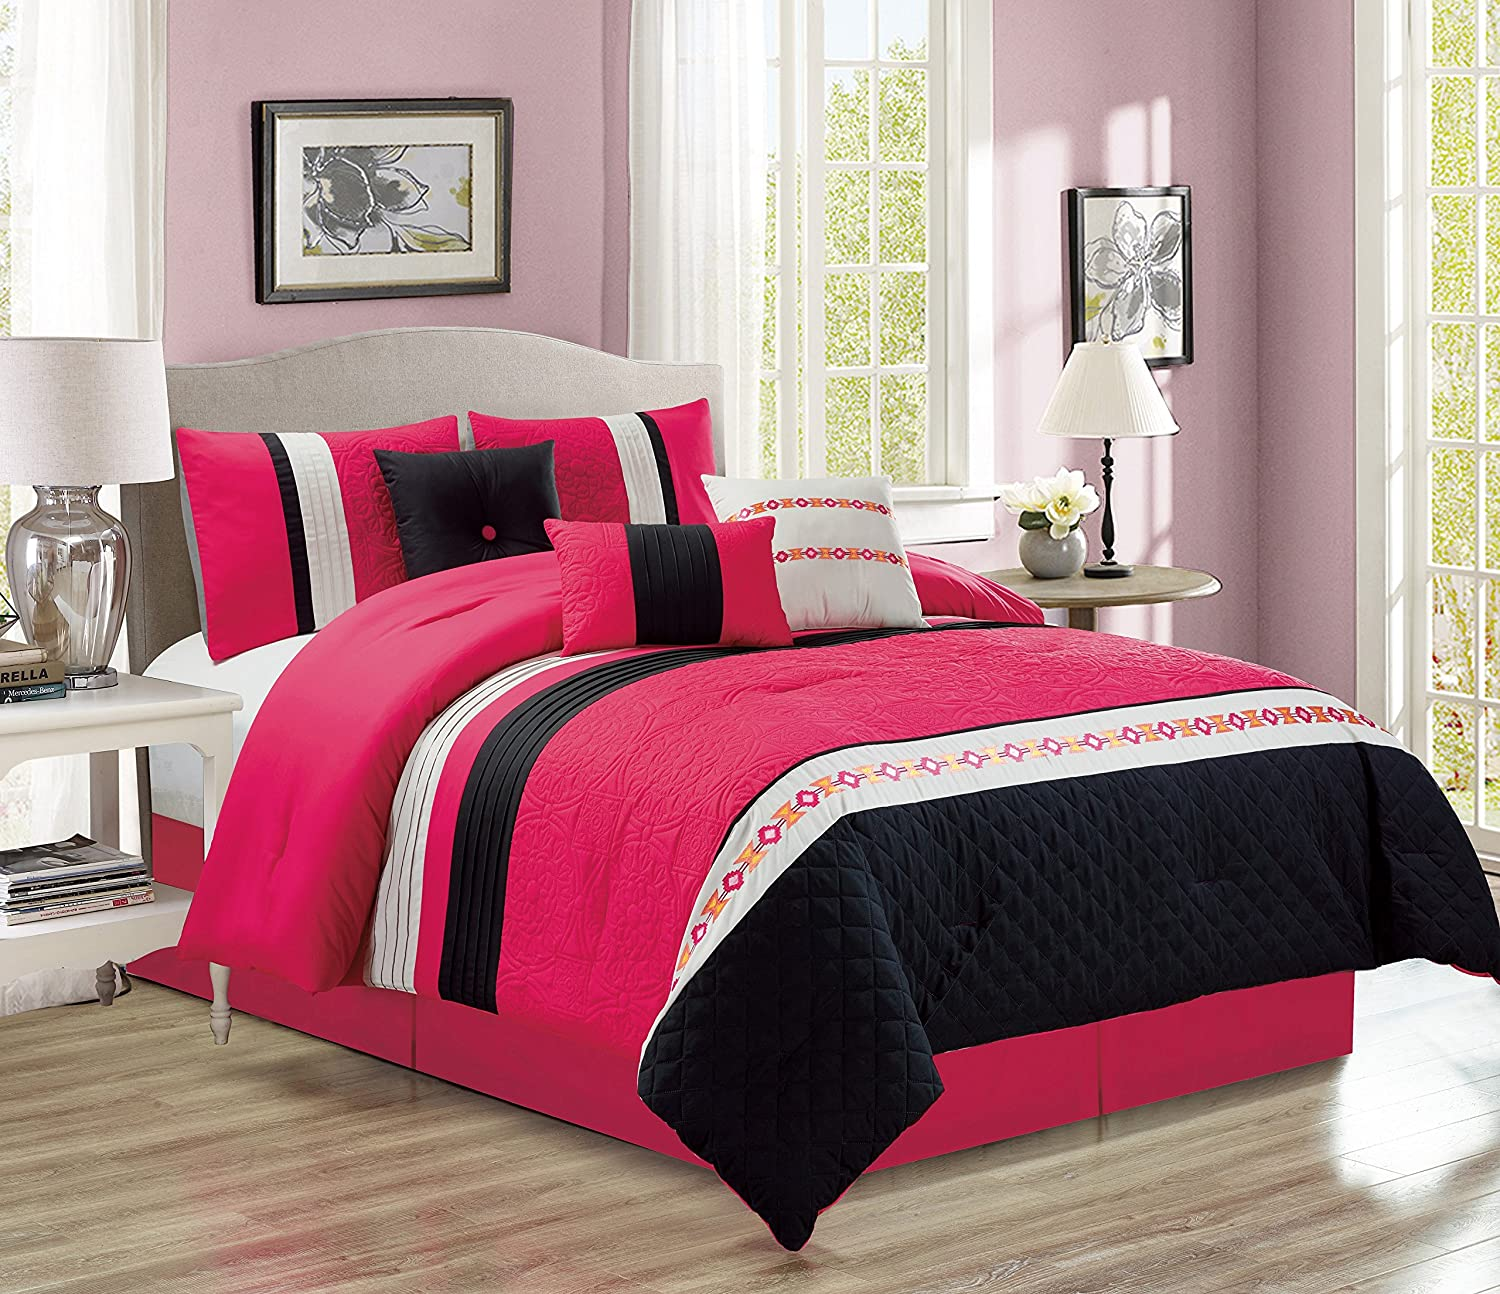 Lina 7-Piece Embossed Comforter Set Bedding - Pink & Black